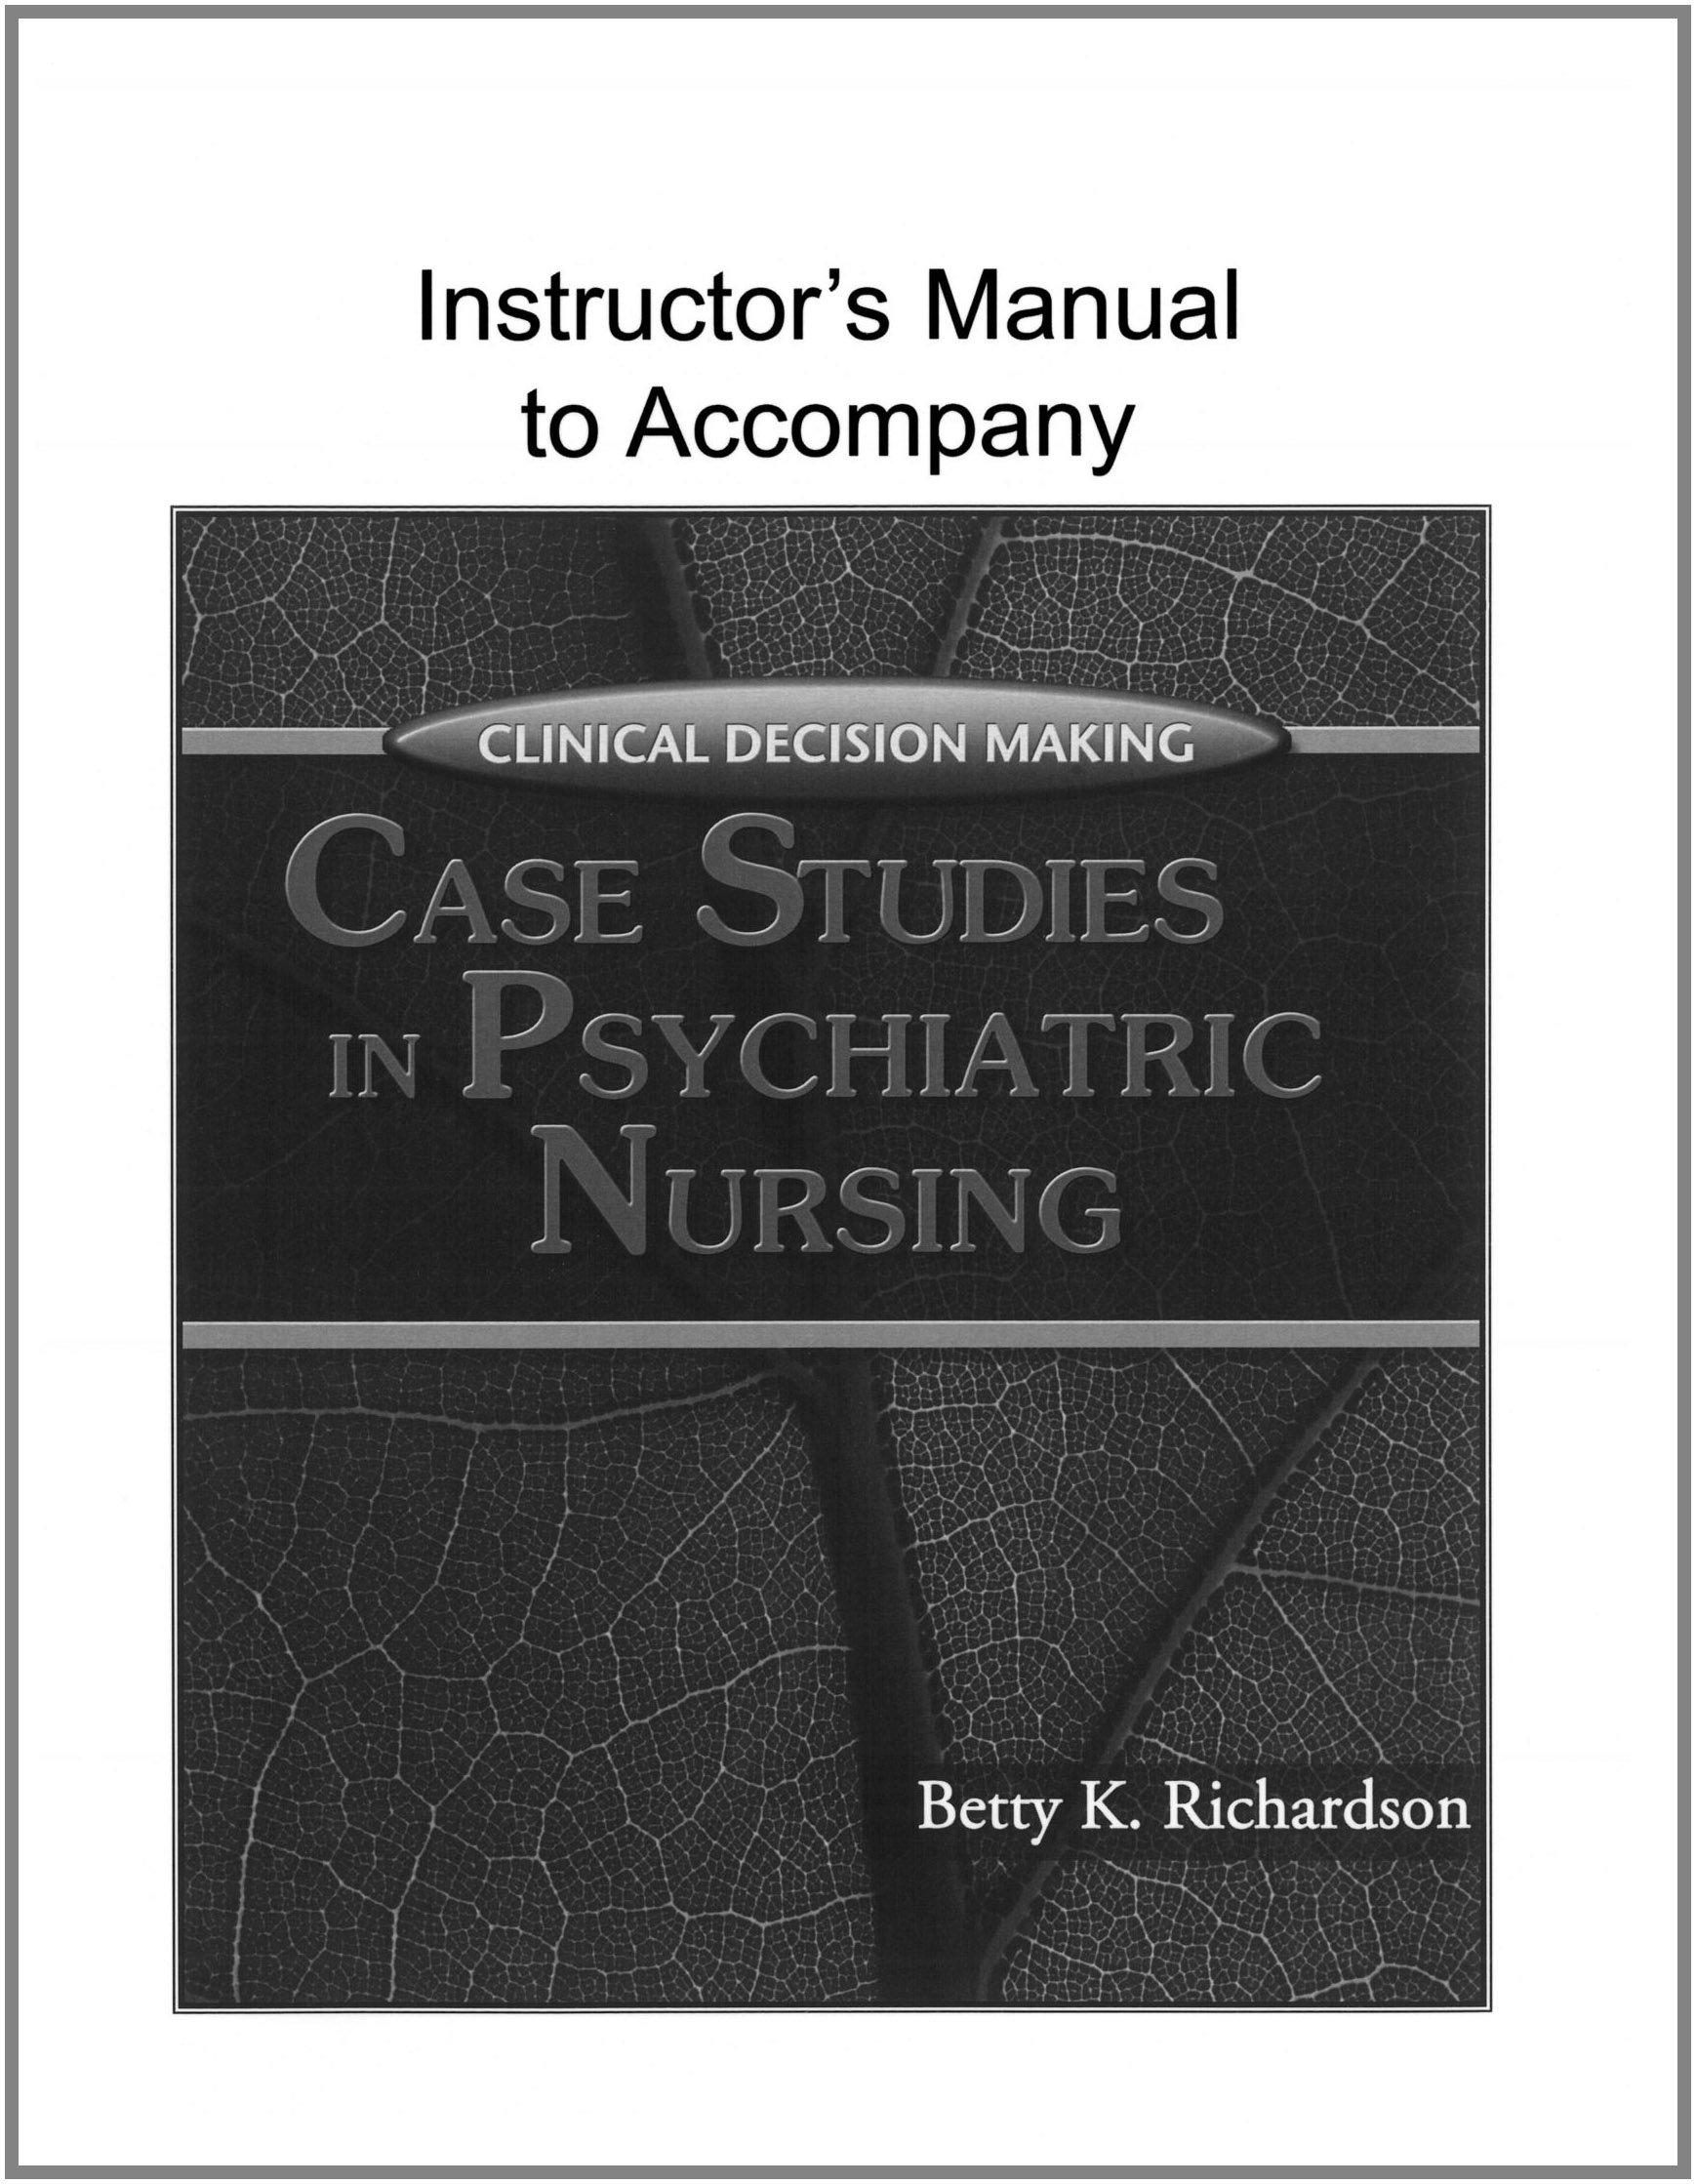 Clinical Decision Making Case Studies in Psychiatric Nursing: Betty